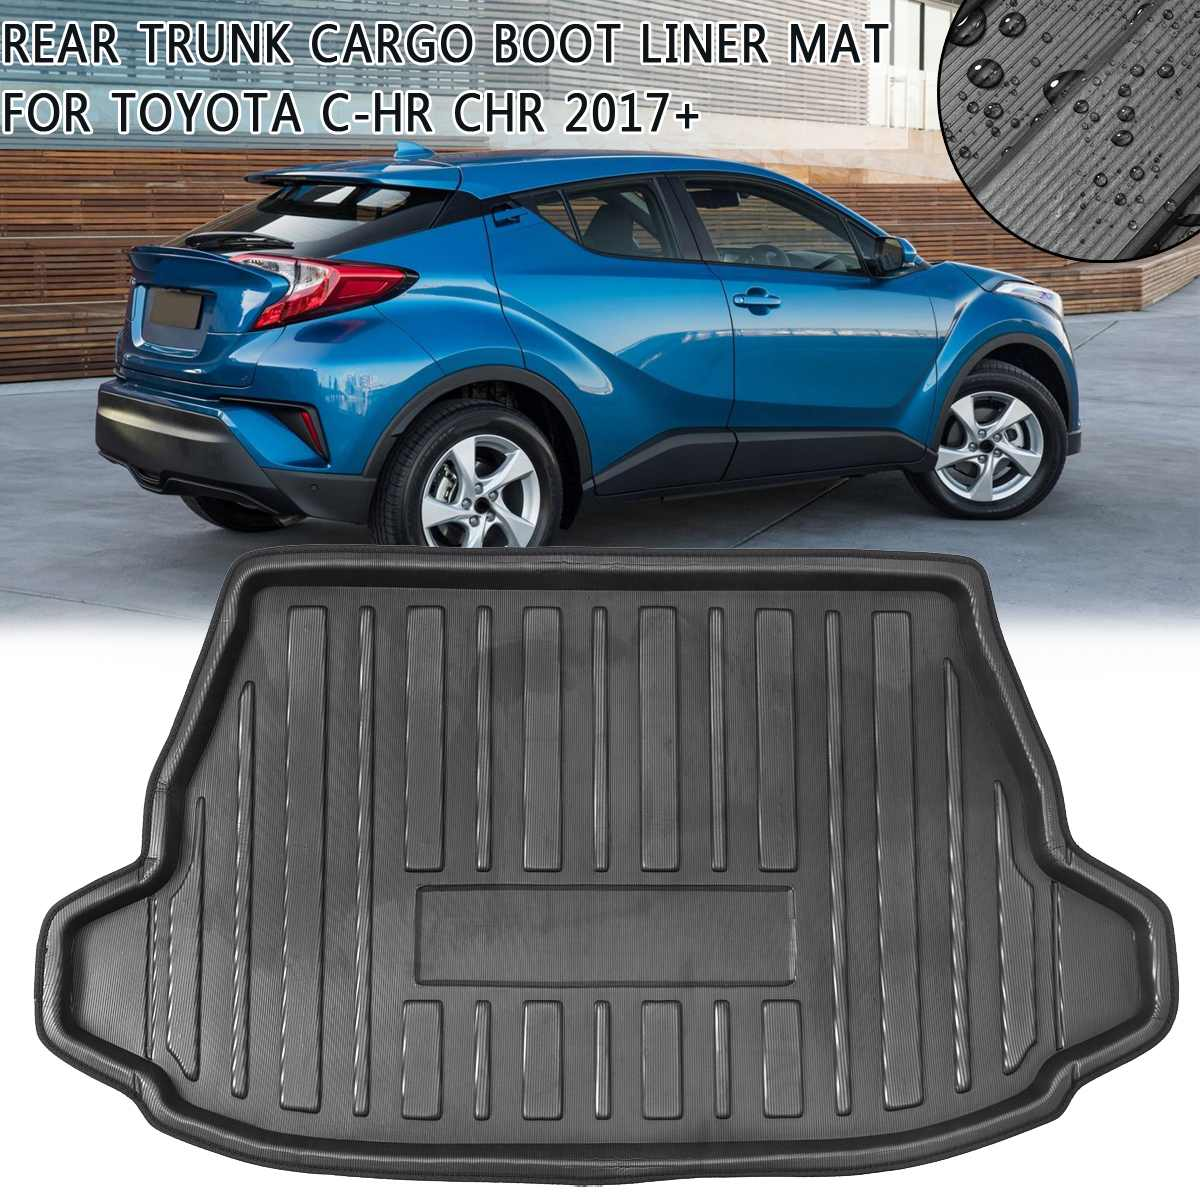 Boot Mat Rear Trunk Liner For Toyota C-HR CHR 2017 2018 2019+ Cargo Floor Tray Carpet Mud Pad Kick Guard Protector Waterproof